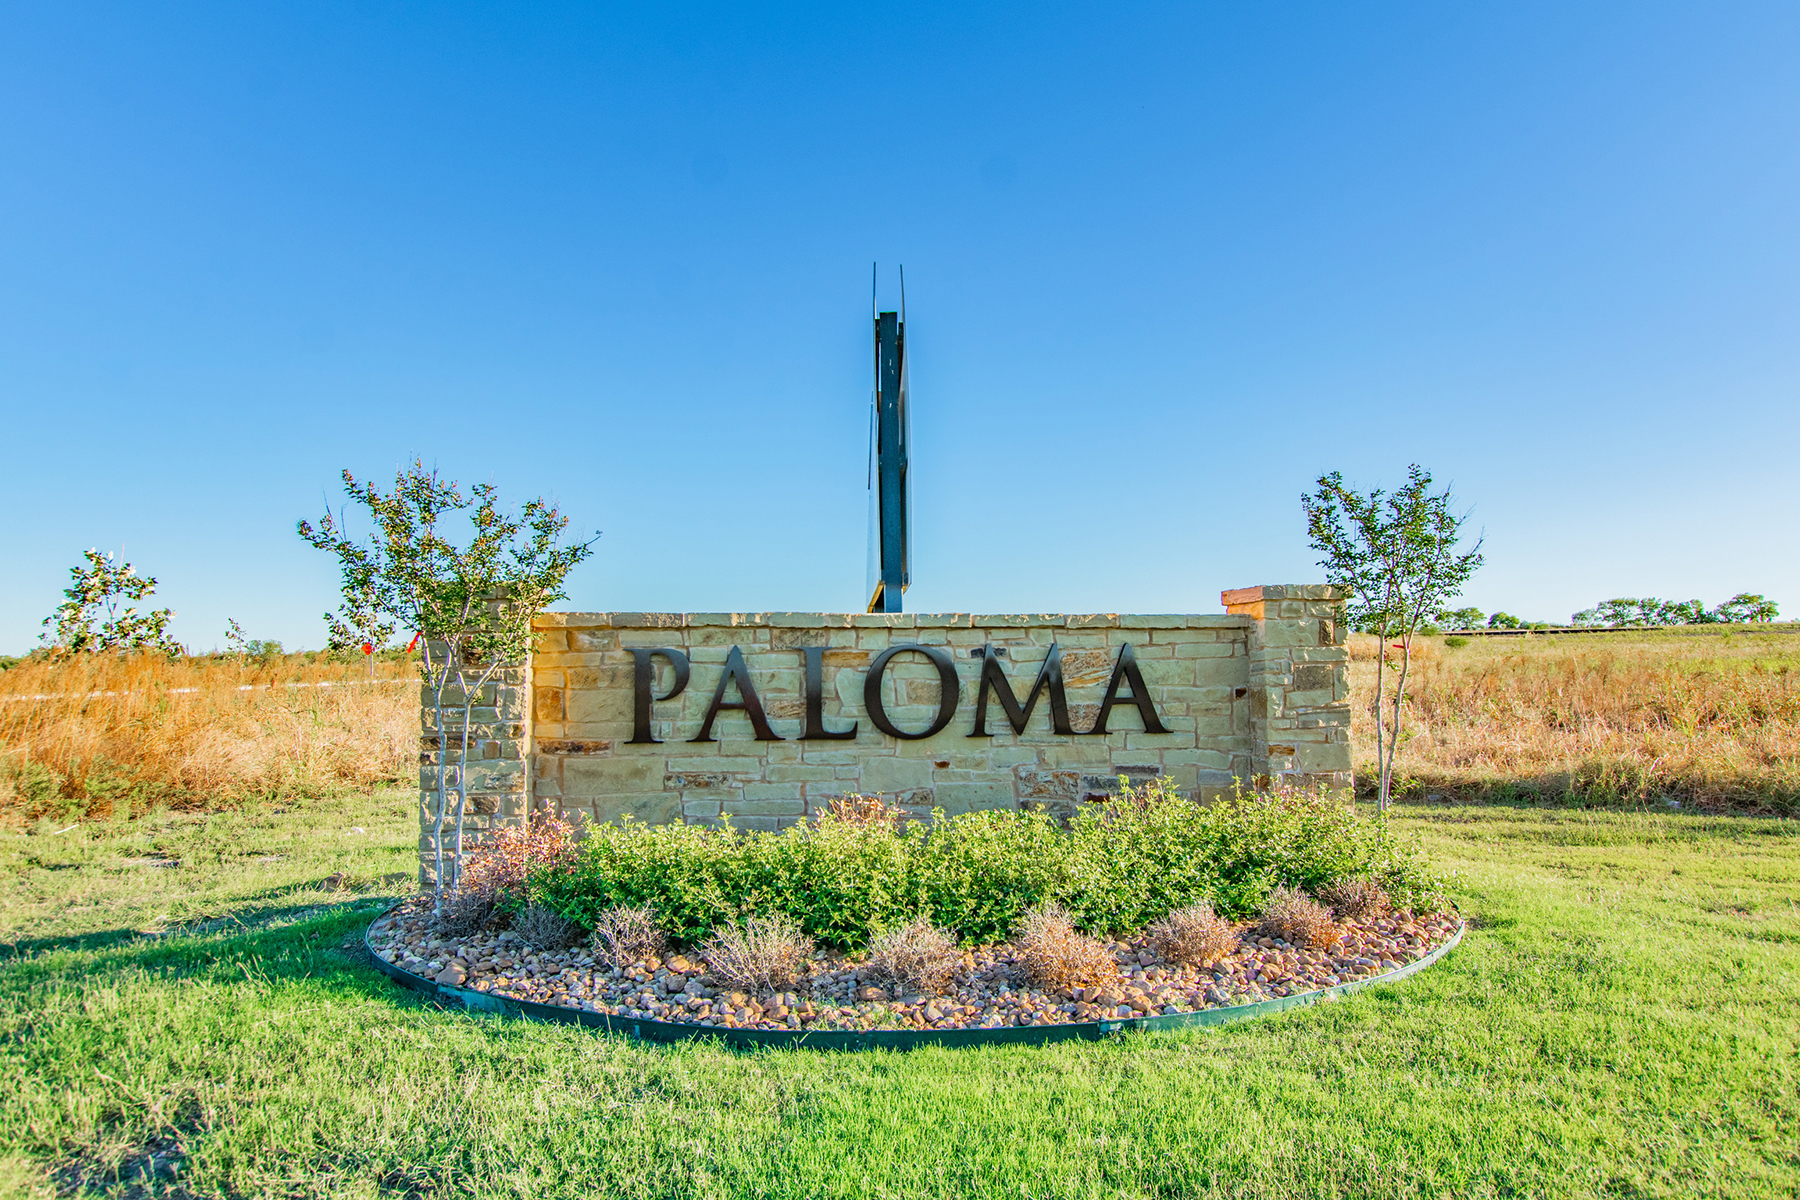 Paloma Entrance